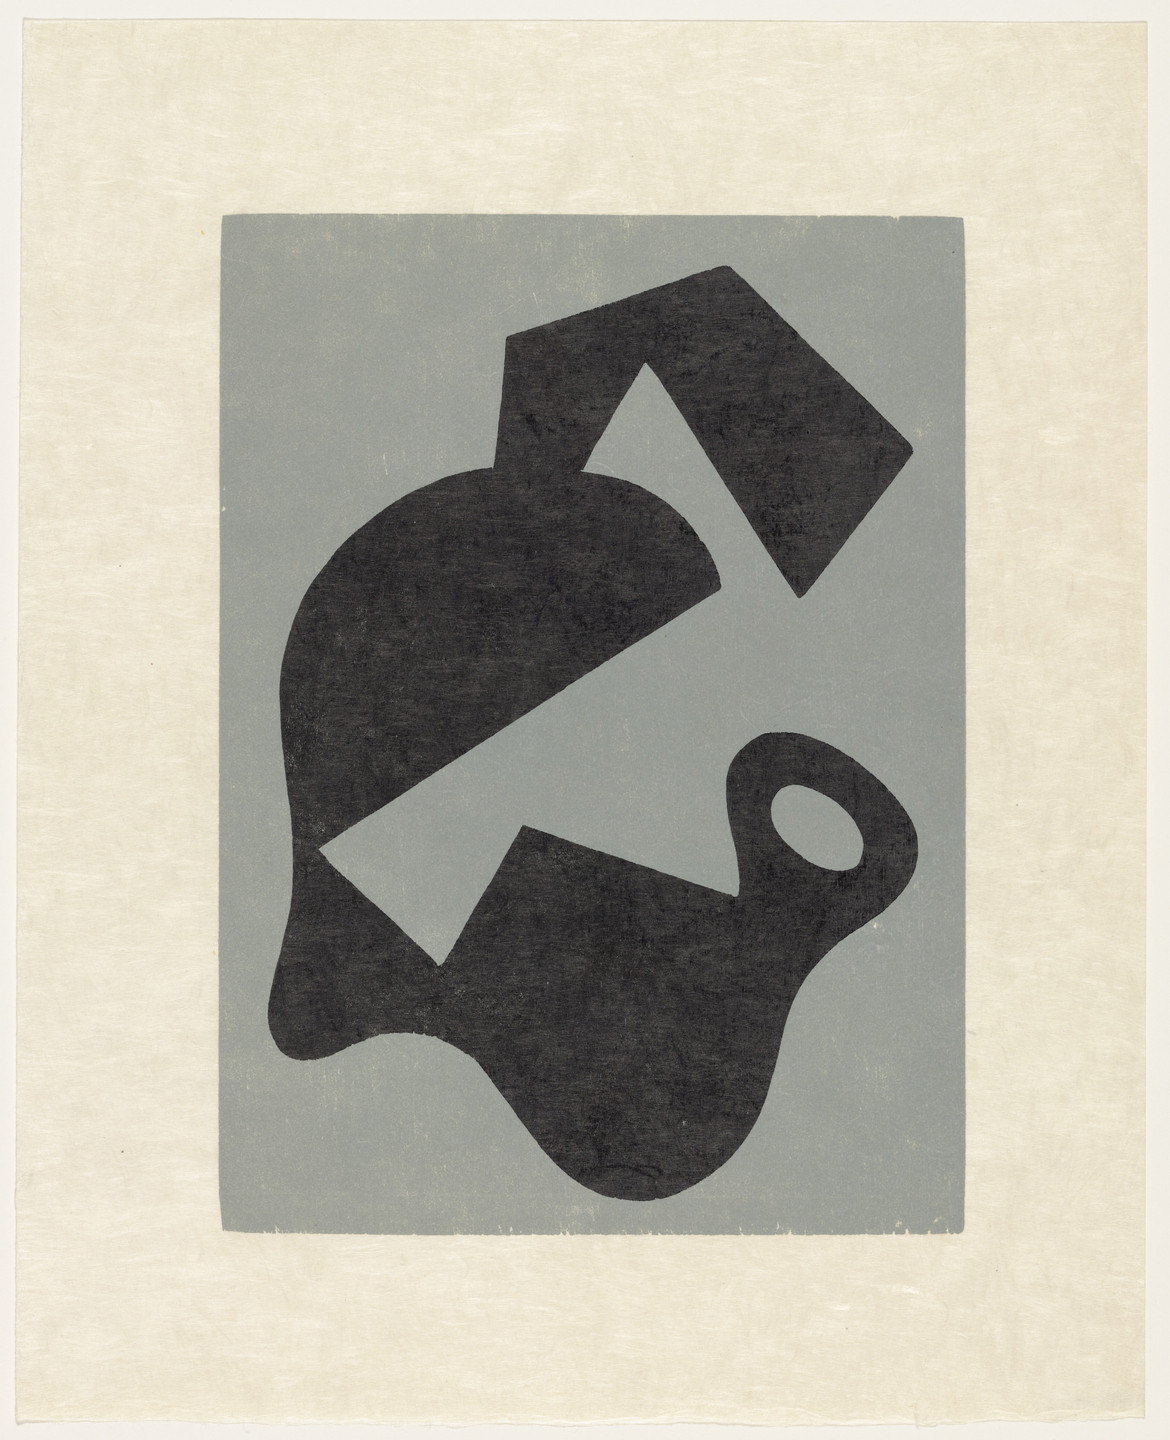 Jean (Hans) Arp. Evil Omen (plate, supplementary suite) from Dreams and Projects. 1951–52, published 1952